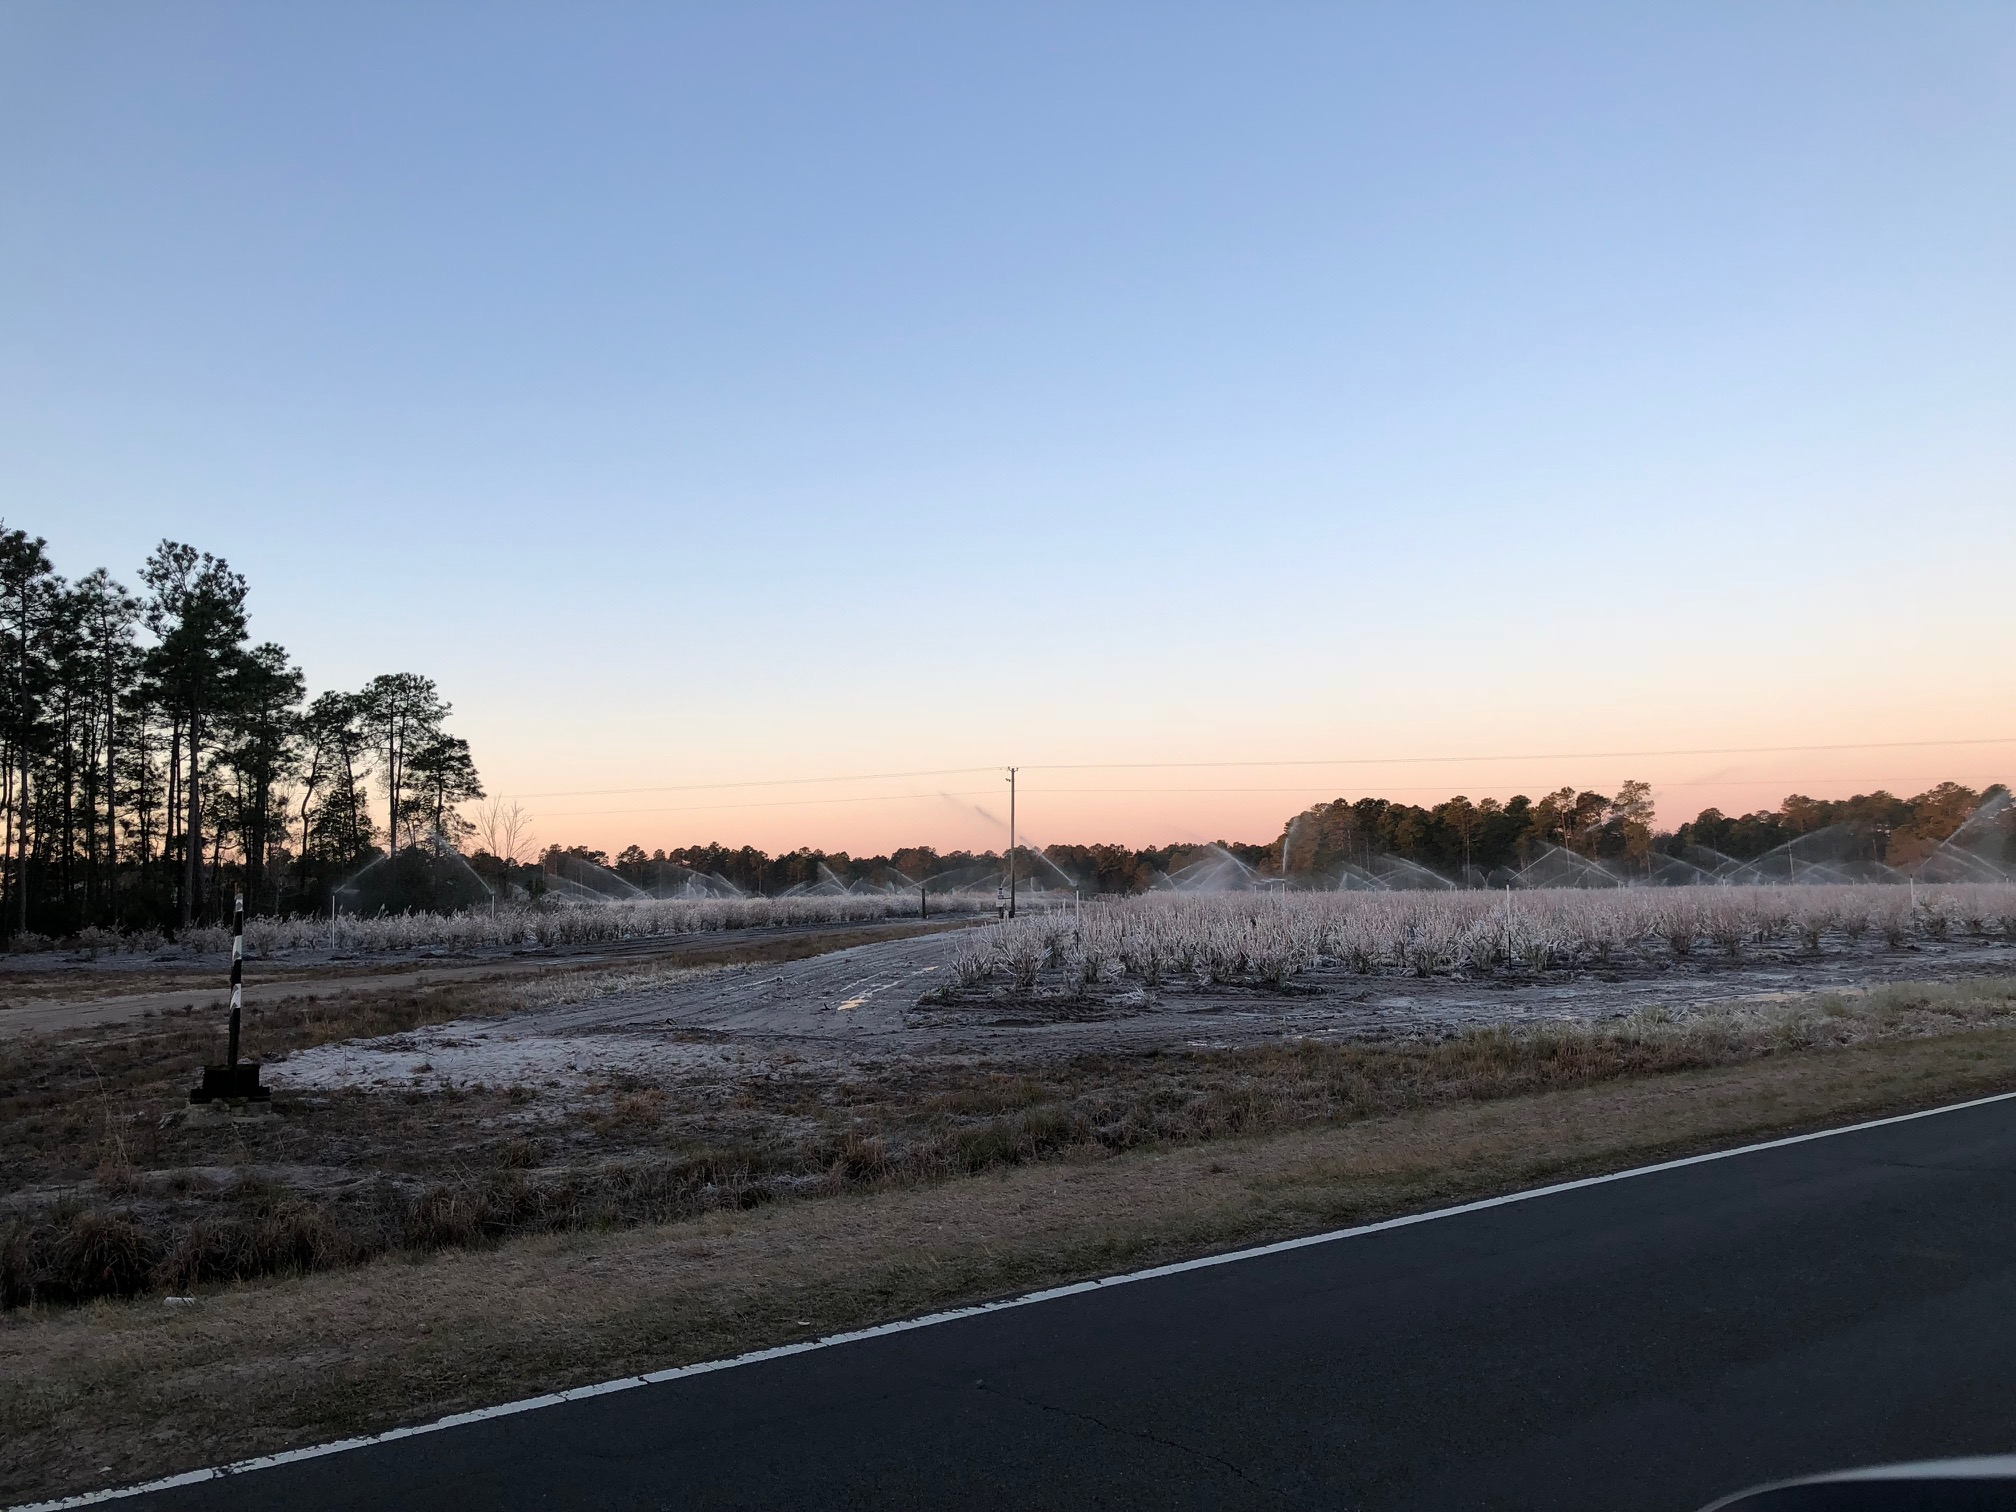 Freezing temperatures have farmers working long hours